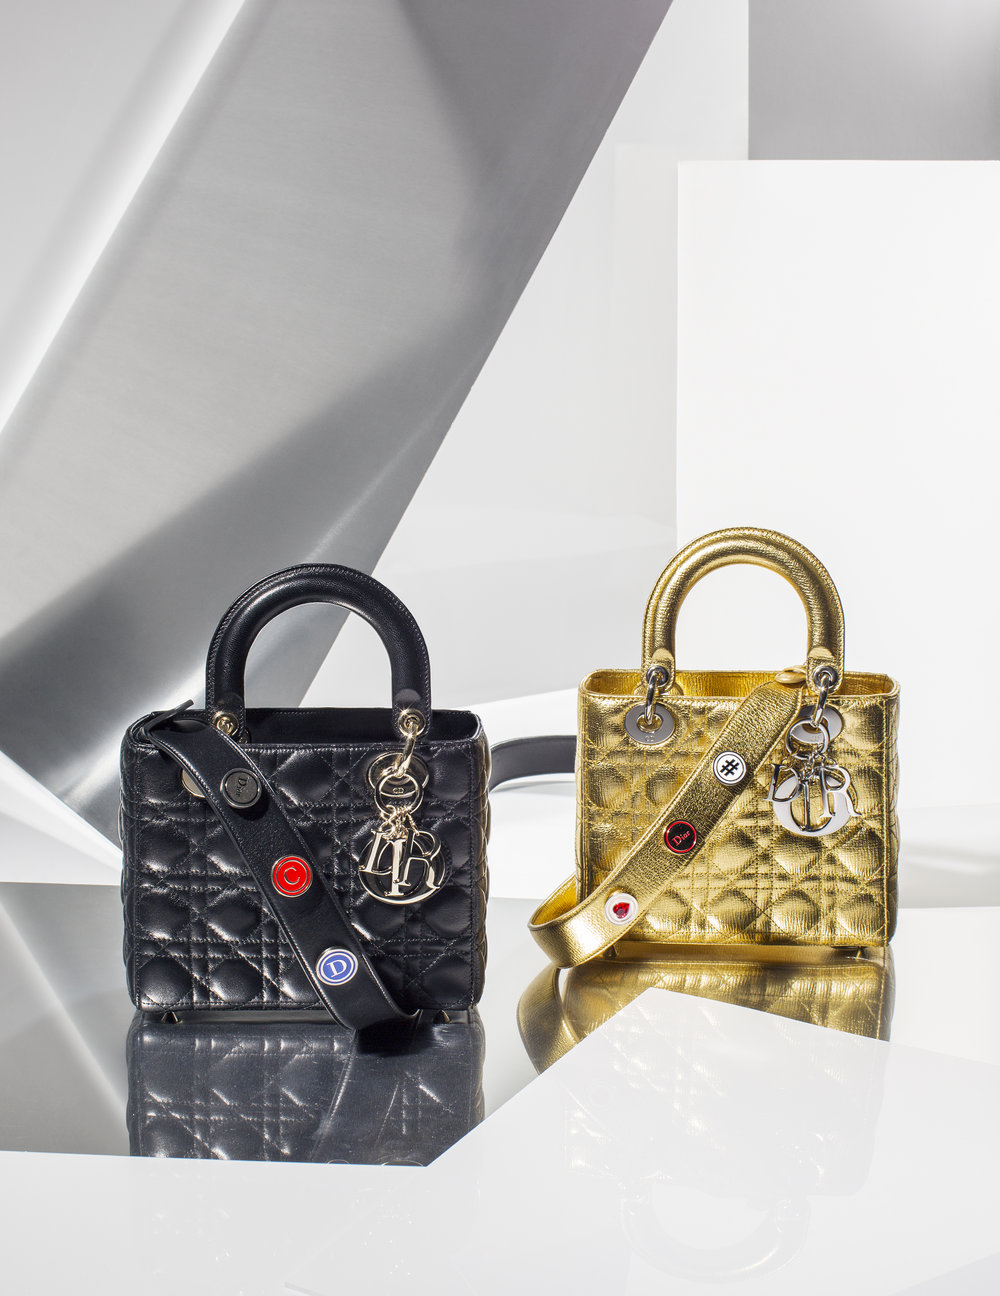 DIOR_XMAS2_CLASSIC_DIOR_BAG_PICTURE_1_0504_b.jpg